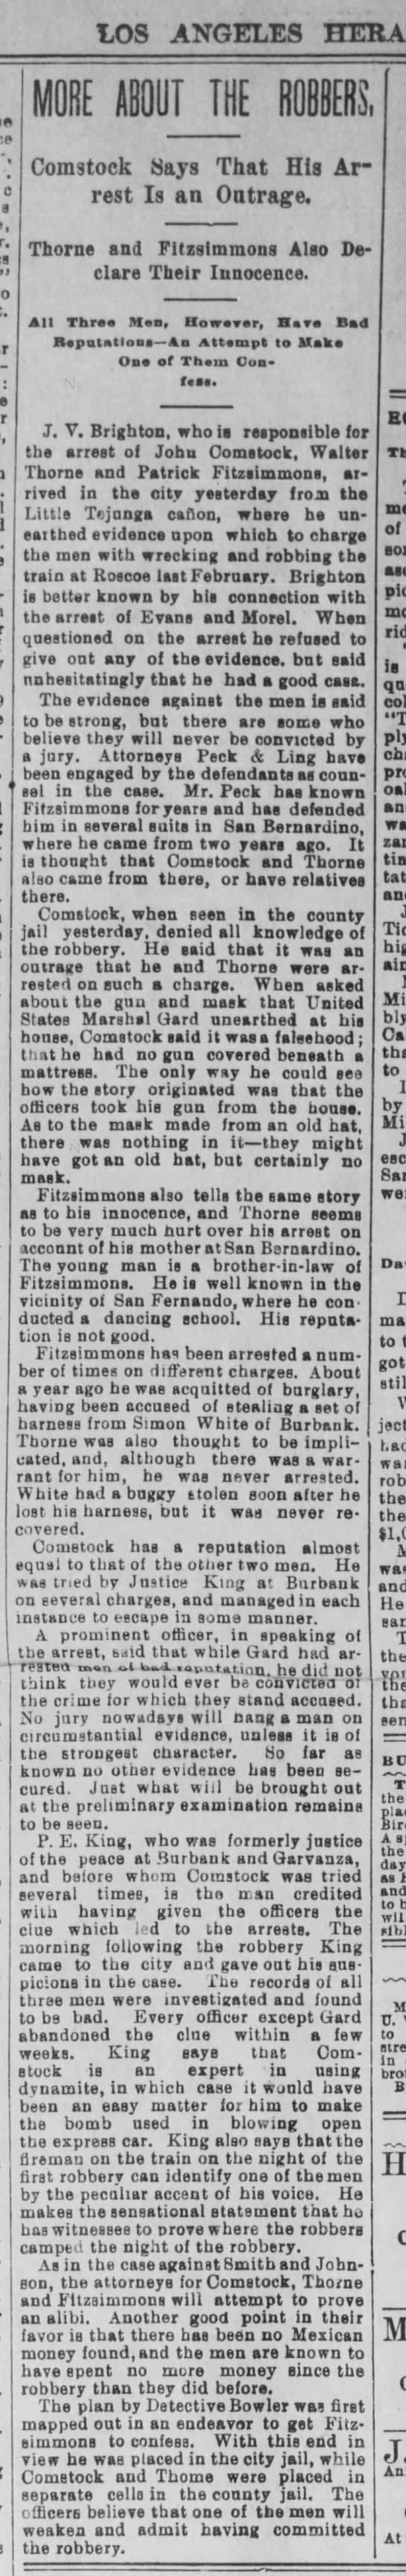 "Los Angeles 14 Apr 1894 ""MORE ABOUT THE ROBBERS"" Comstock Says That His Arrest Is an Outrage."